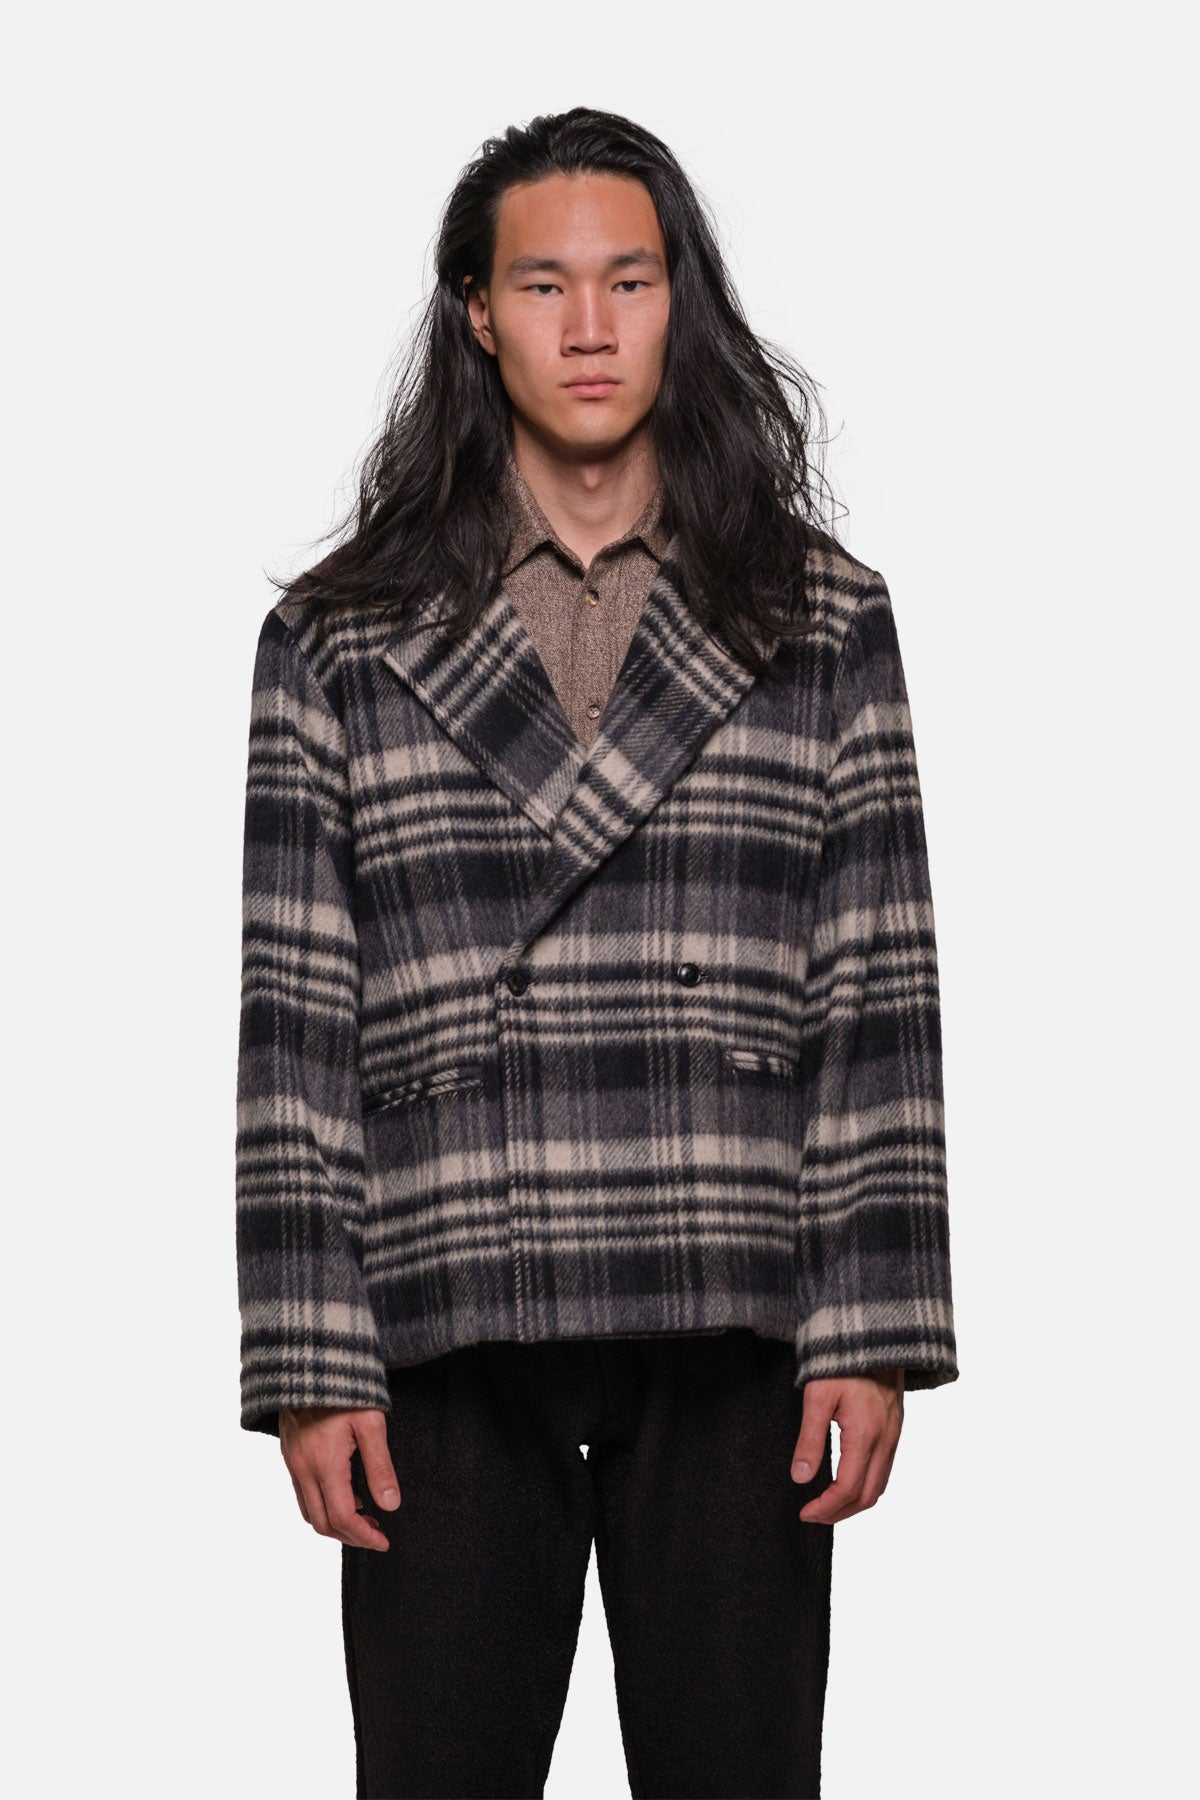 KERRYTOWN JACKET IN WOOL PILE PLAID - Fortune Goods